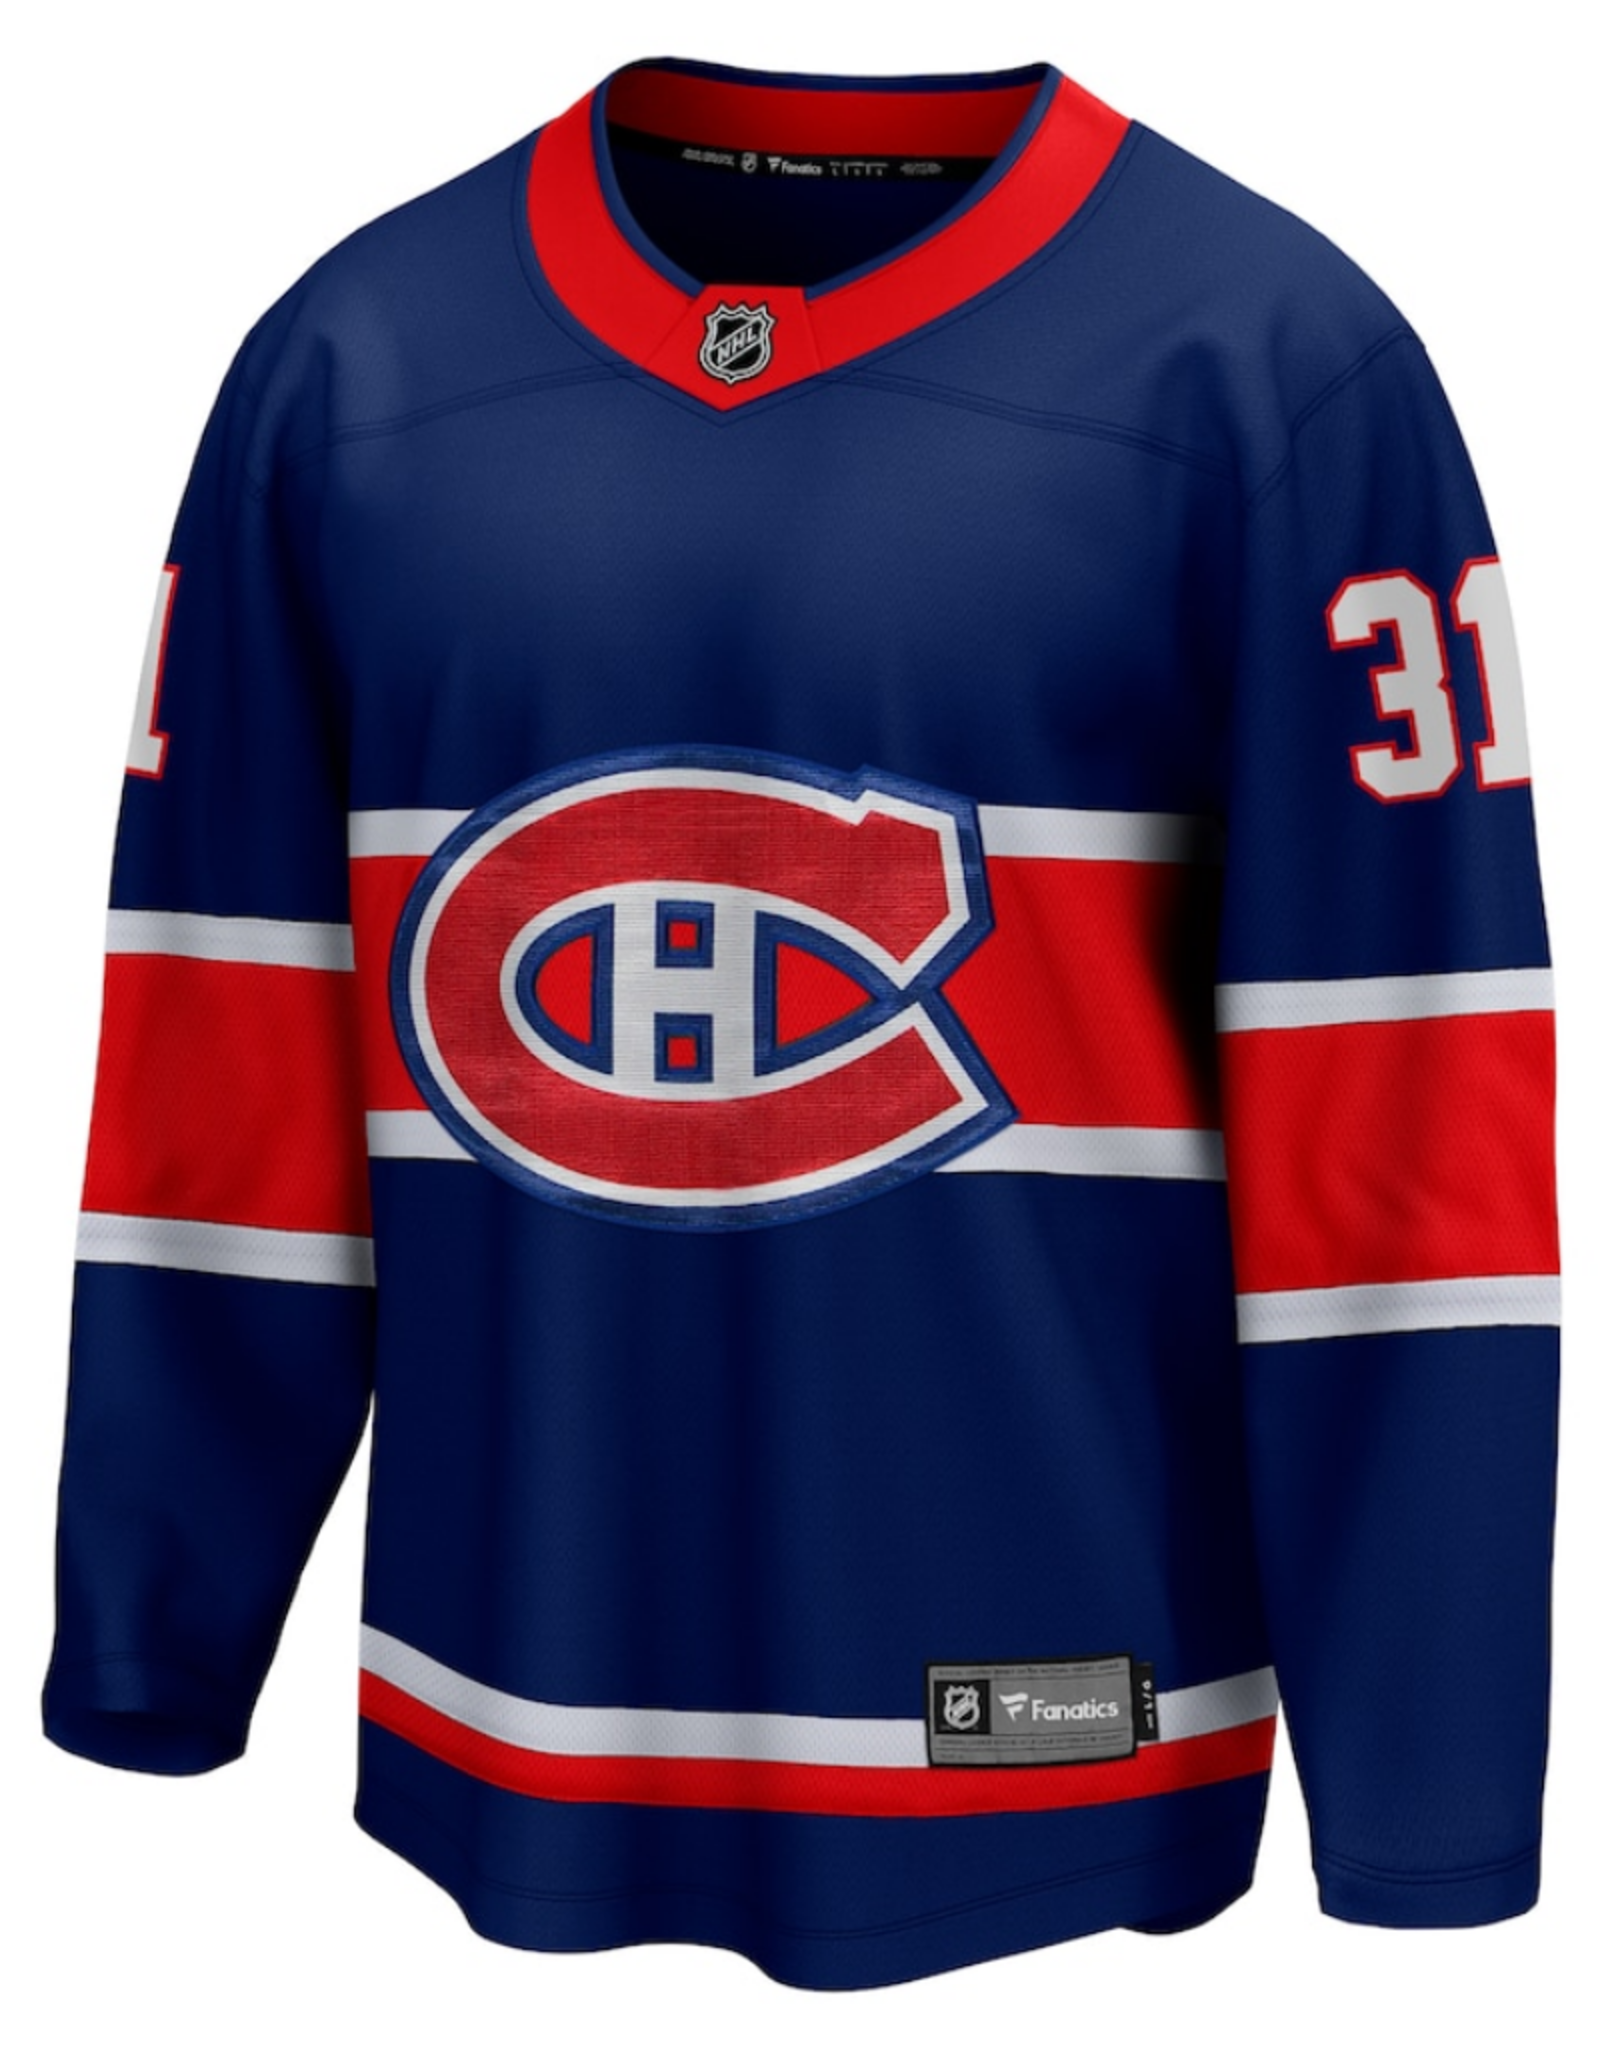 Fanatics Fanatics Men's Breakaway Price #31 Retro Reverse Jersey Montreal Canadiens